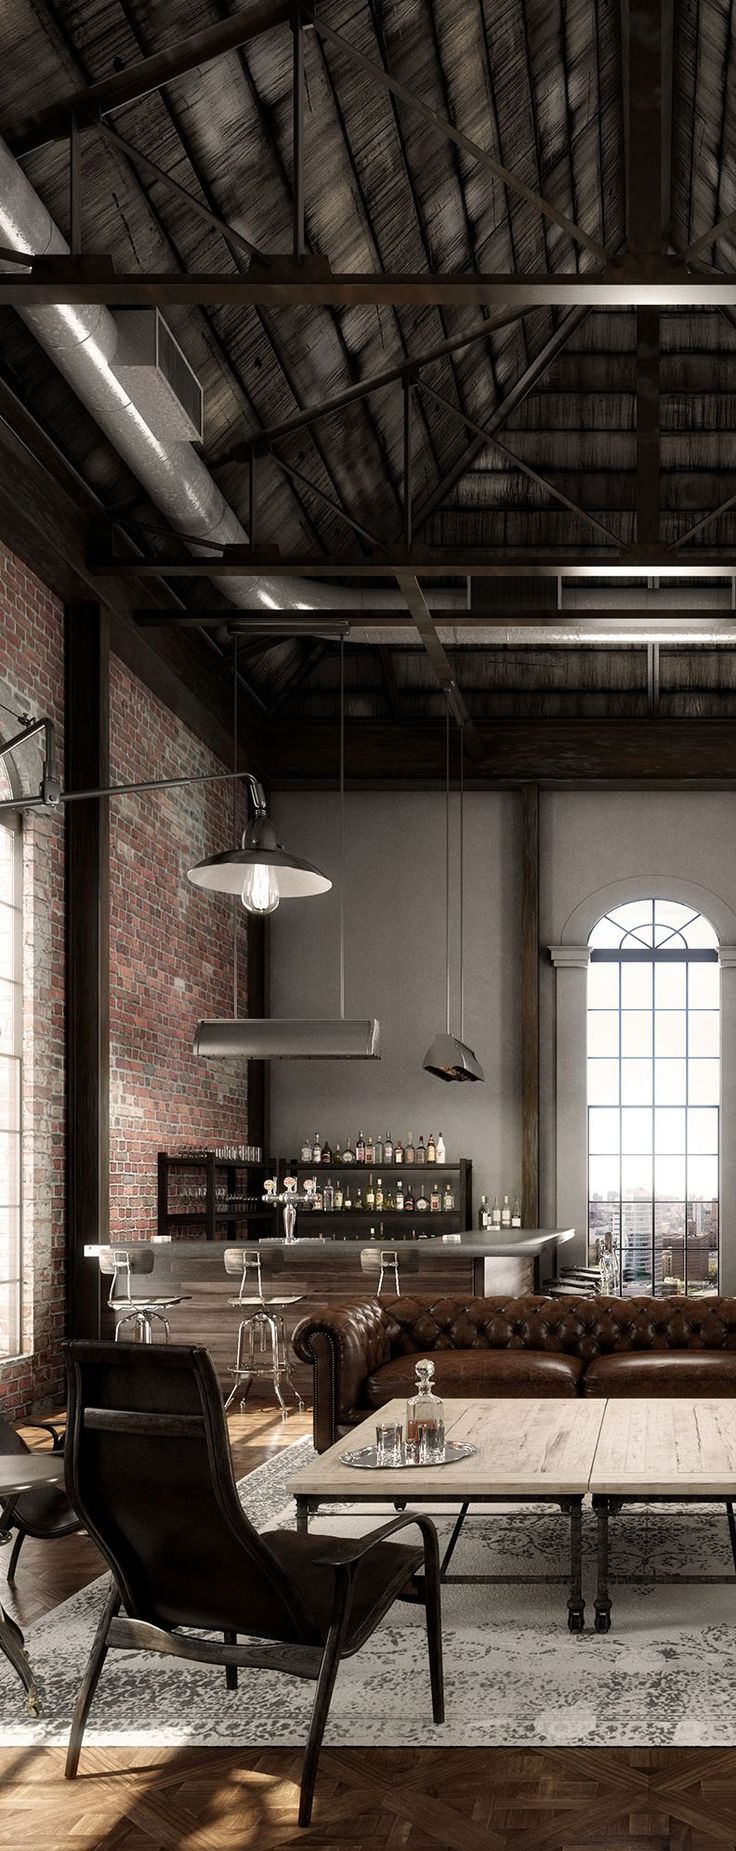 Looking for interior design ideas for your living room decor? Take a look at this industrial living room with an industrial style | www.livingroomideas.eu